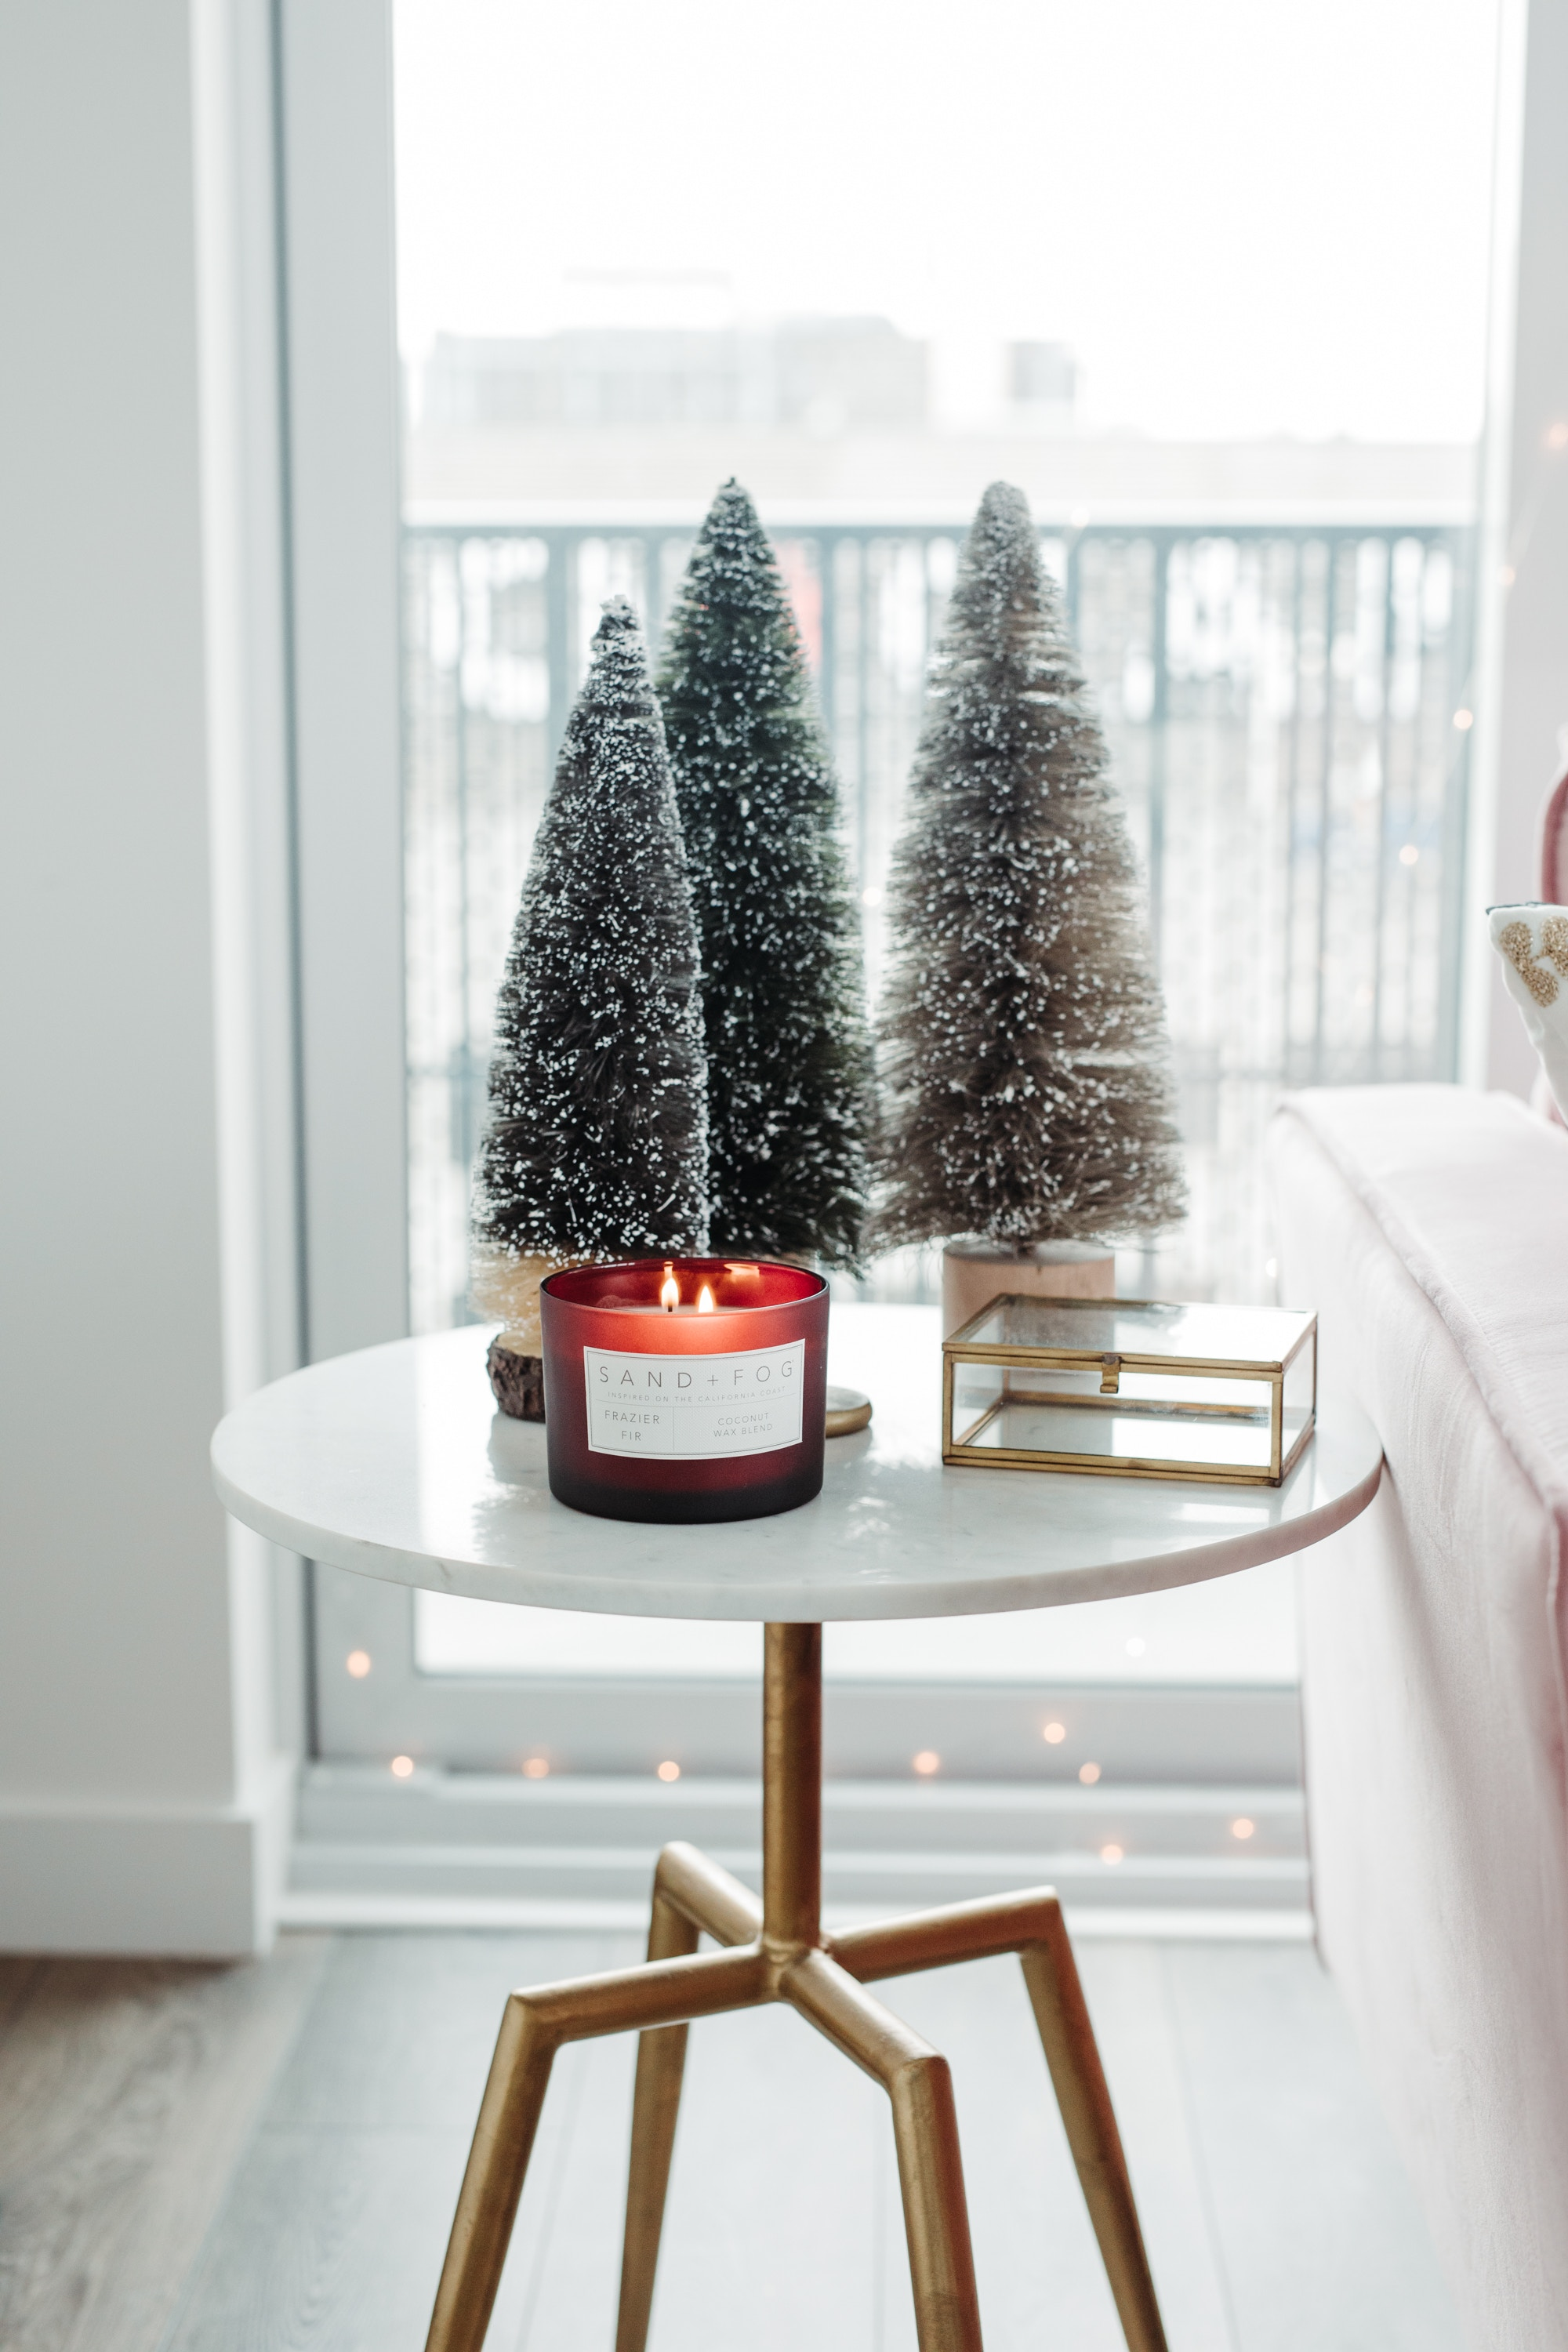 Bottlebrush trees and a Sand + Fog candle are a classic Christmas mainstay!